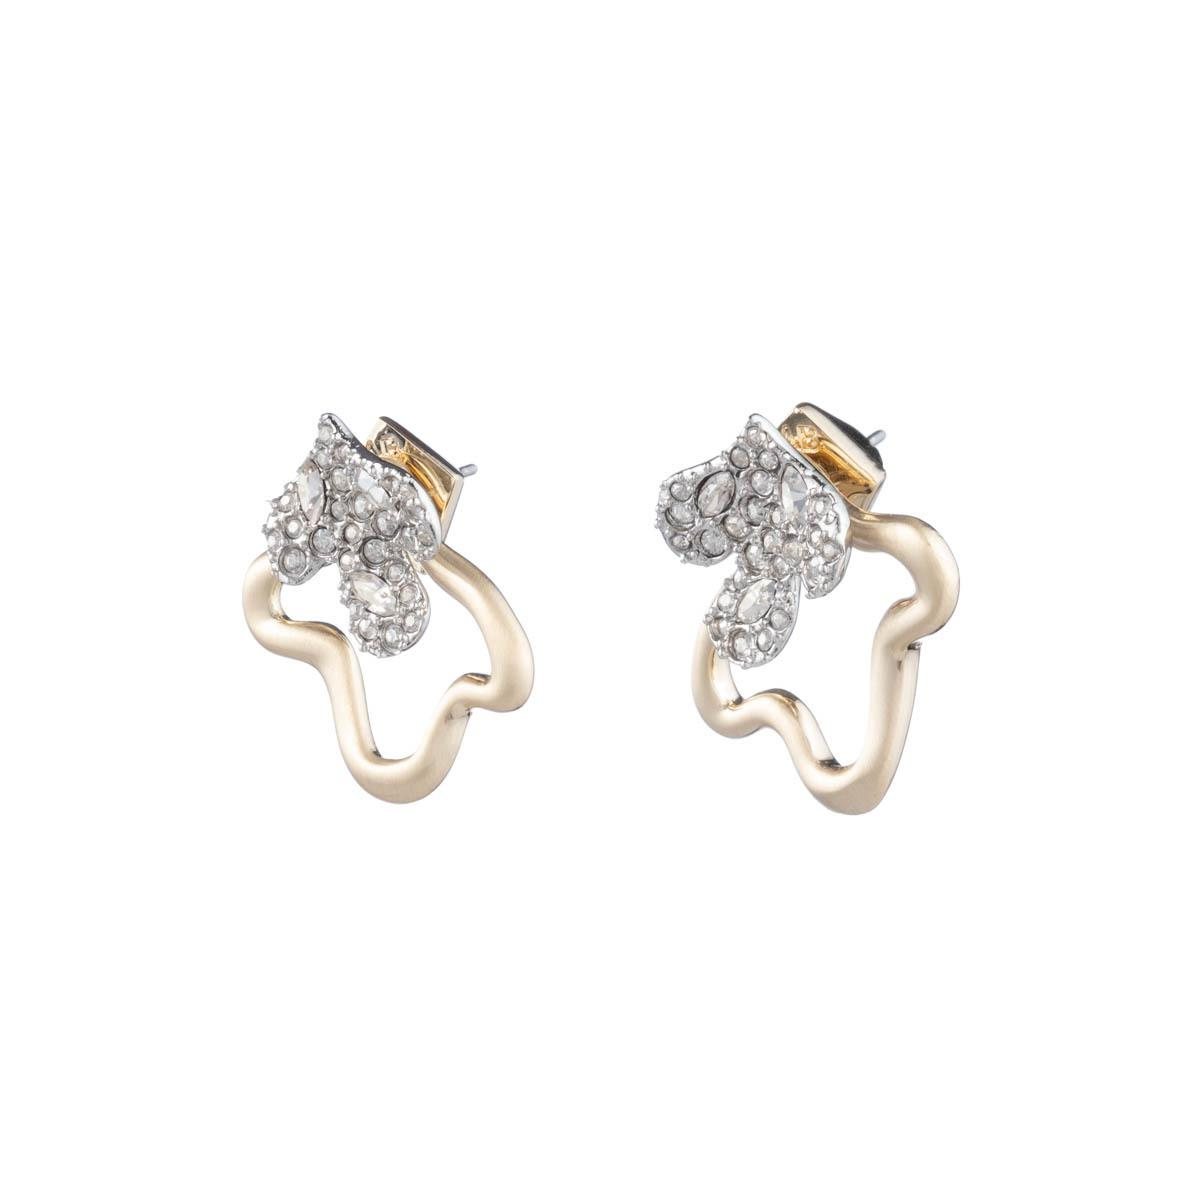 Alexis Bittar Crystal Encrusted Post Earring With Freeform Jacket t8W1m